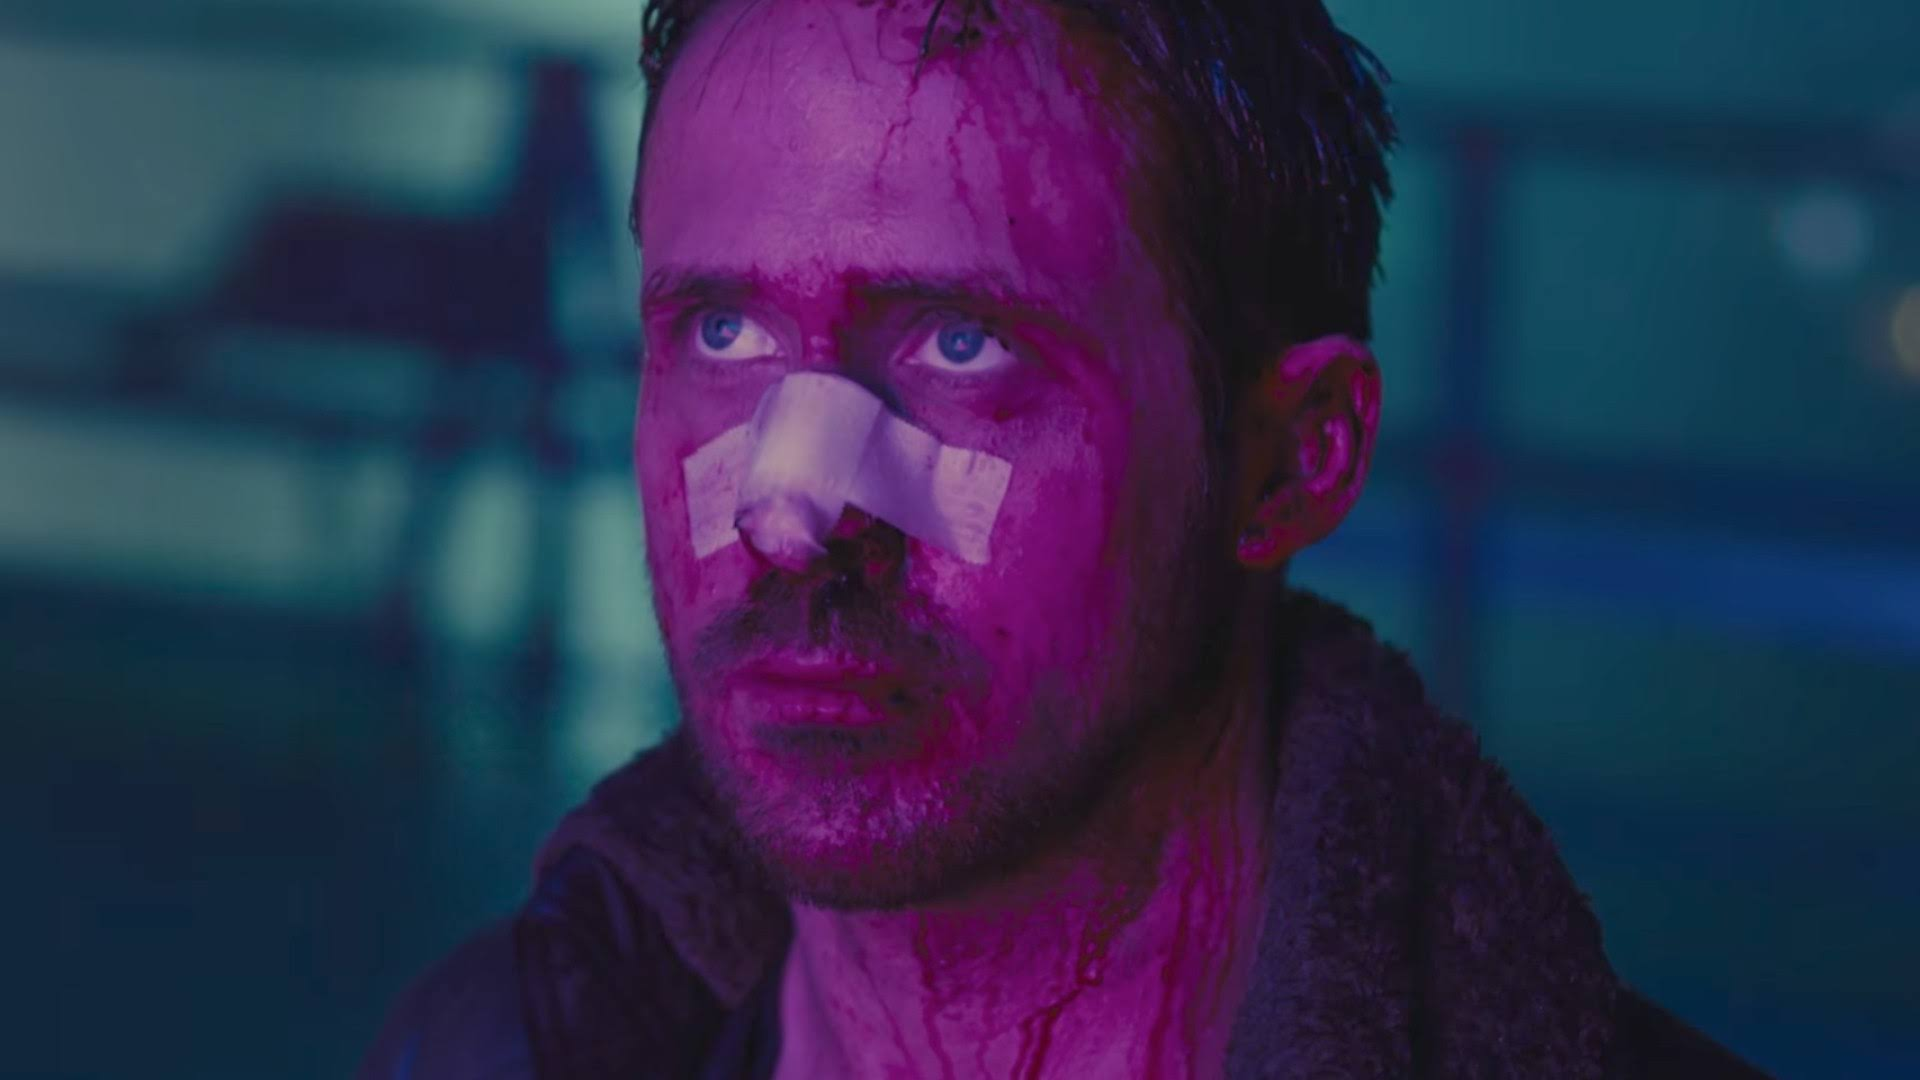 New 'Blade Runner 2049' Trailer Hits The Web